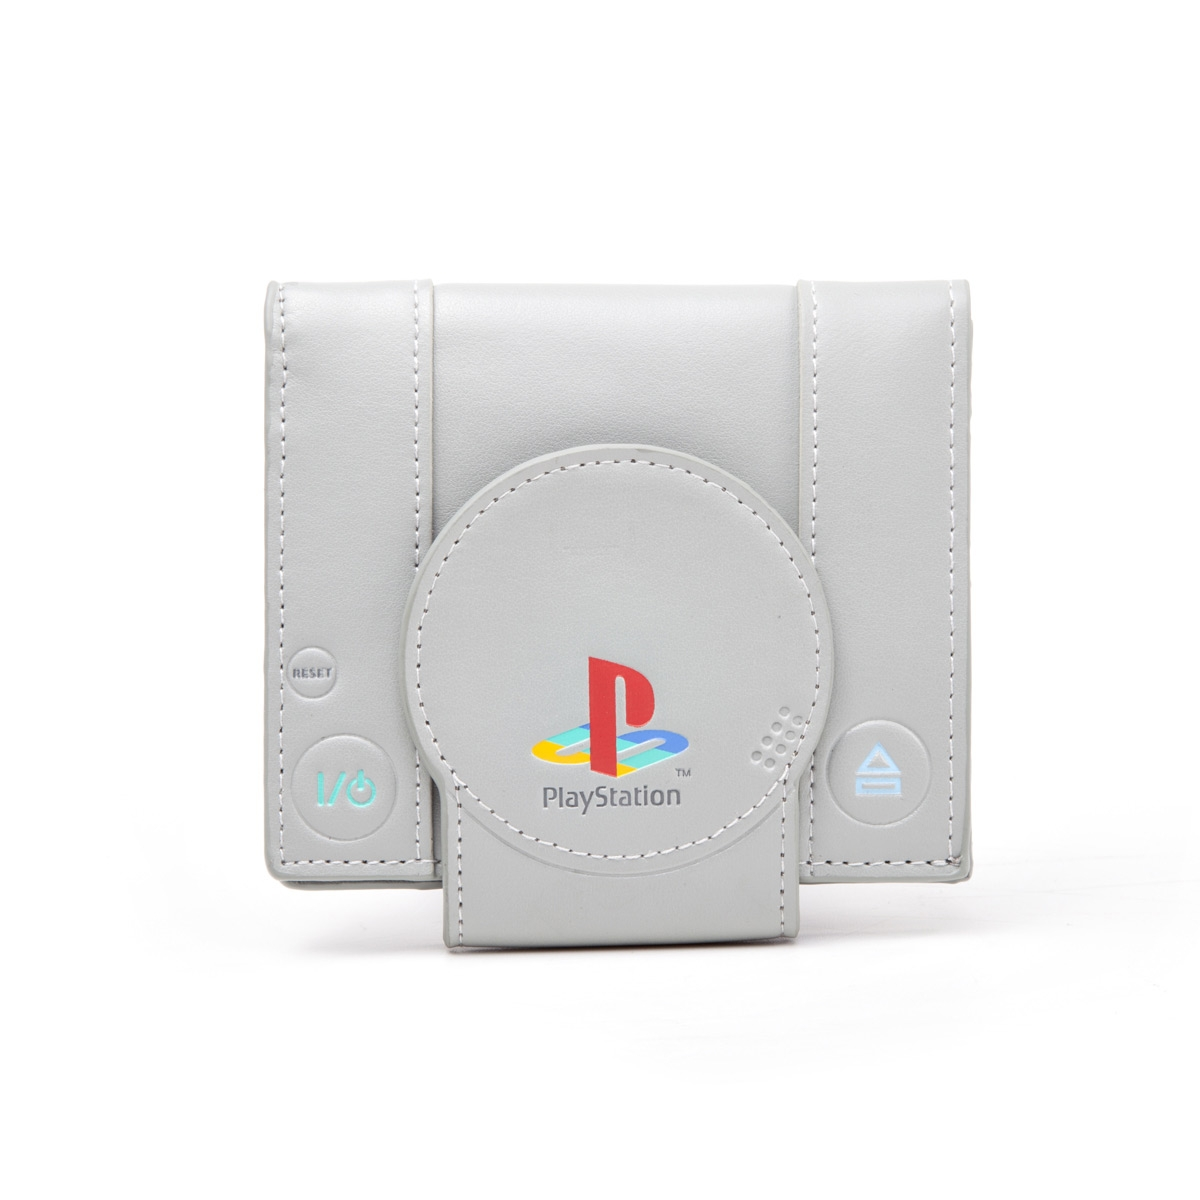 Alternative photo: Playstation Console Bifold Wallet